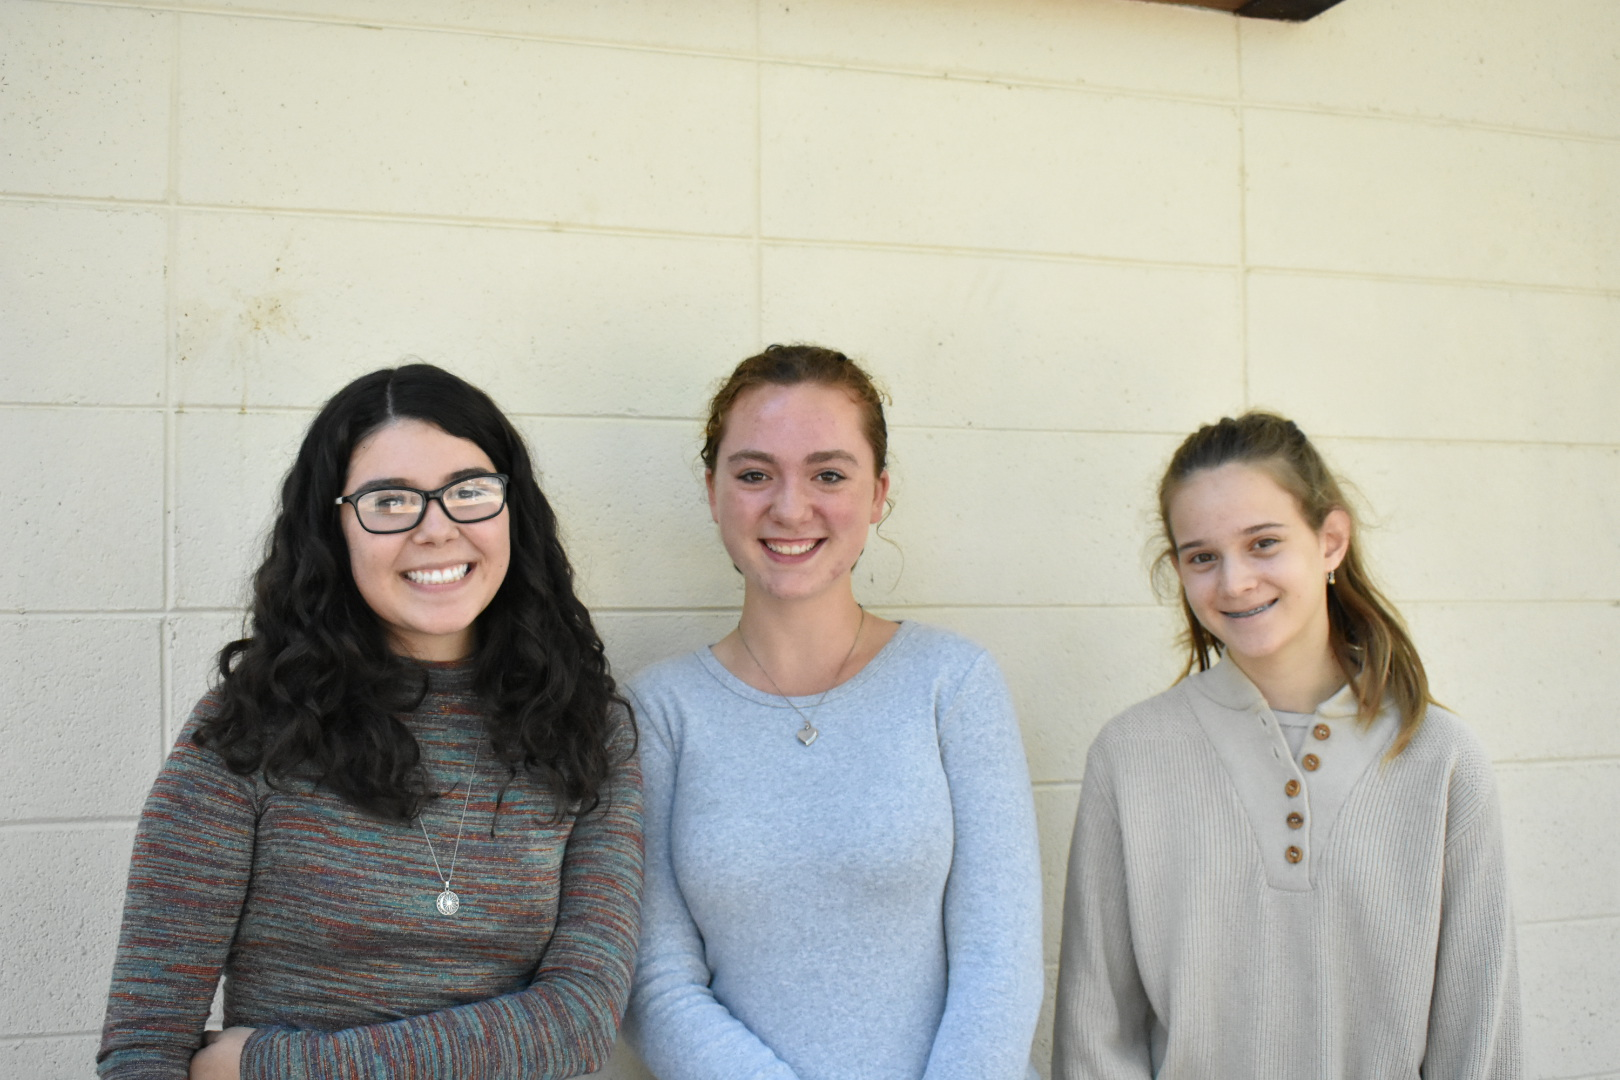 Davis High students launch society and culture website